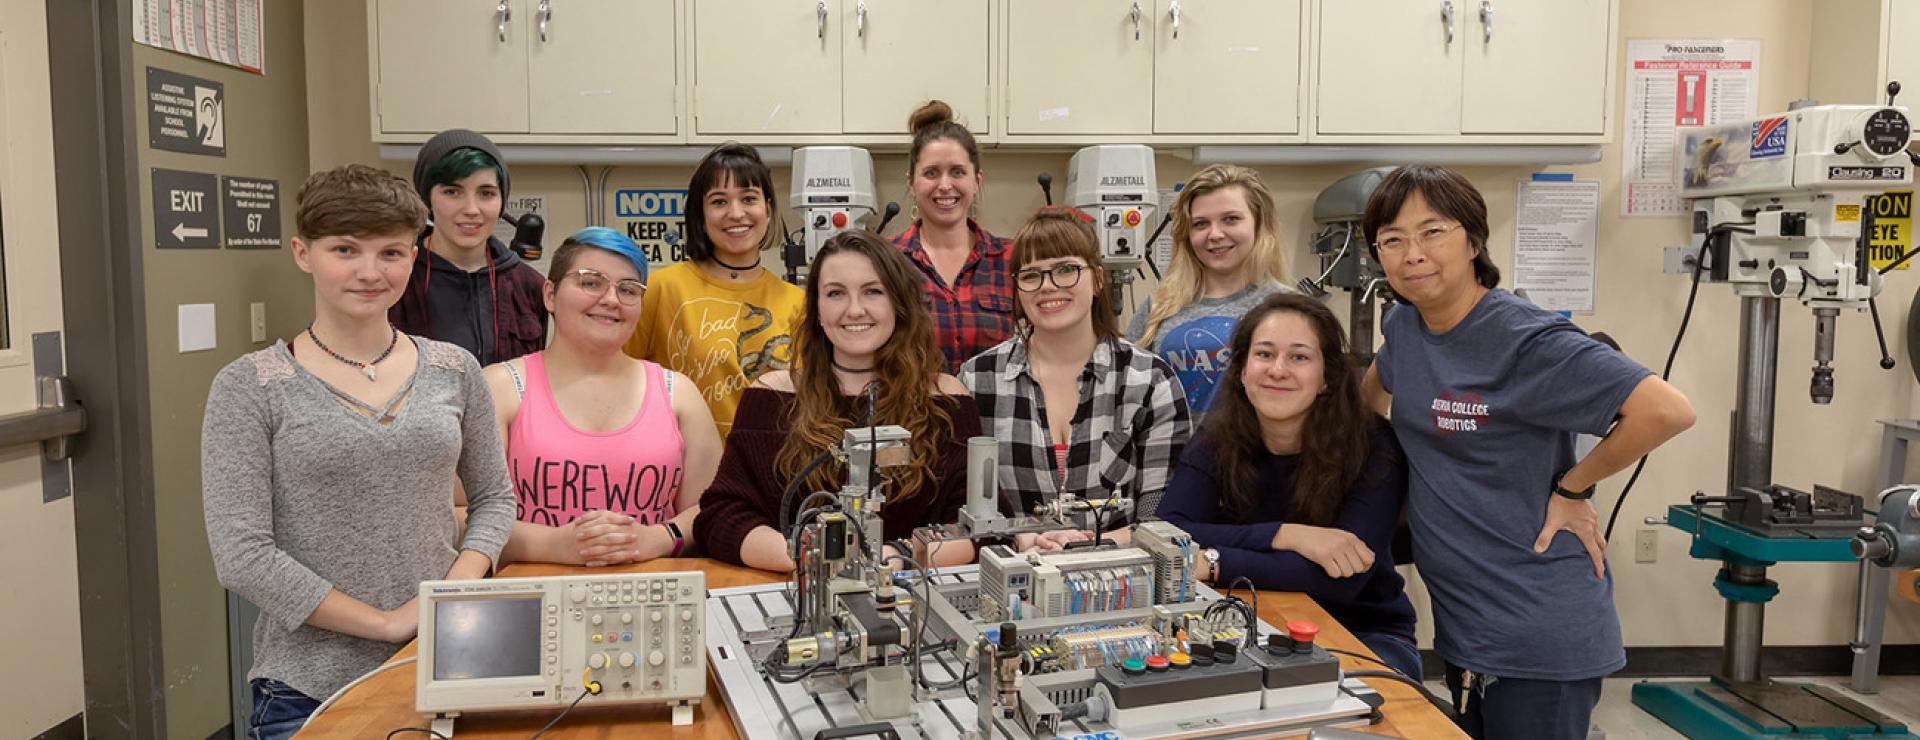 Women students in Mechatronics